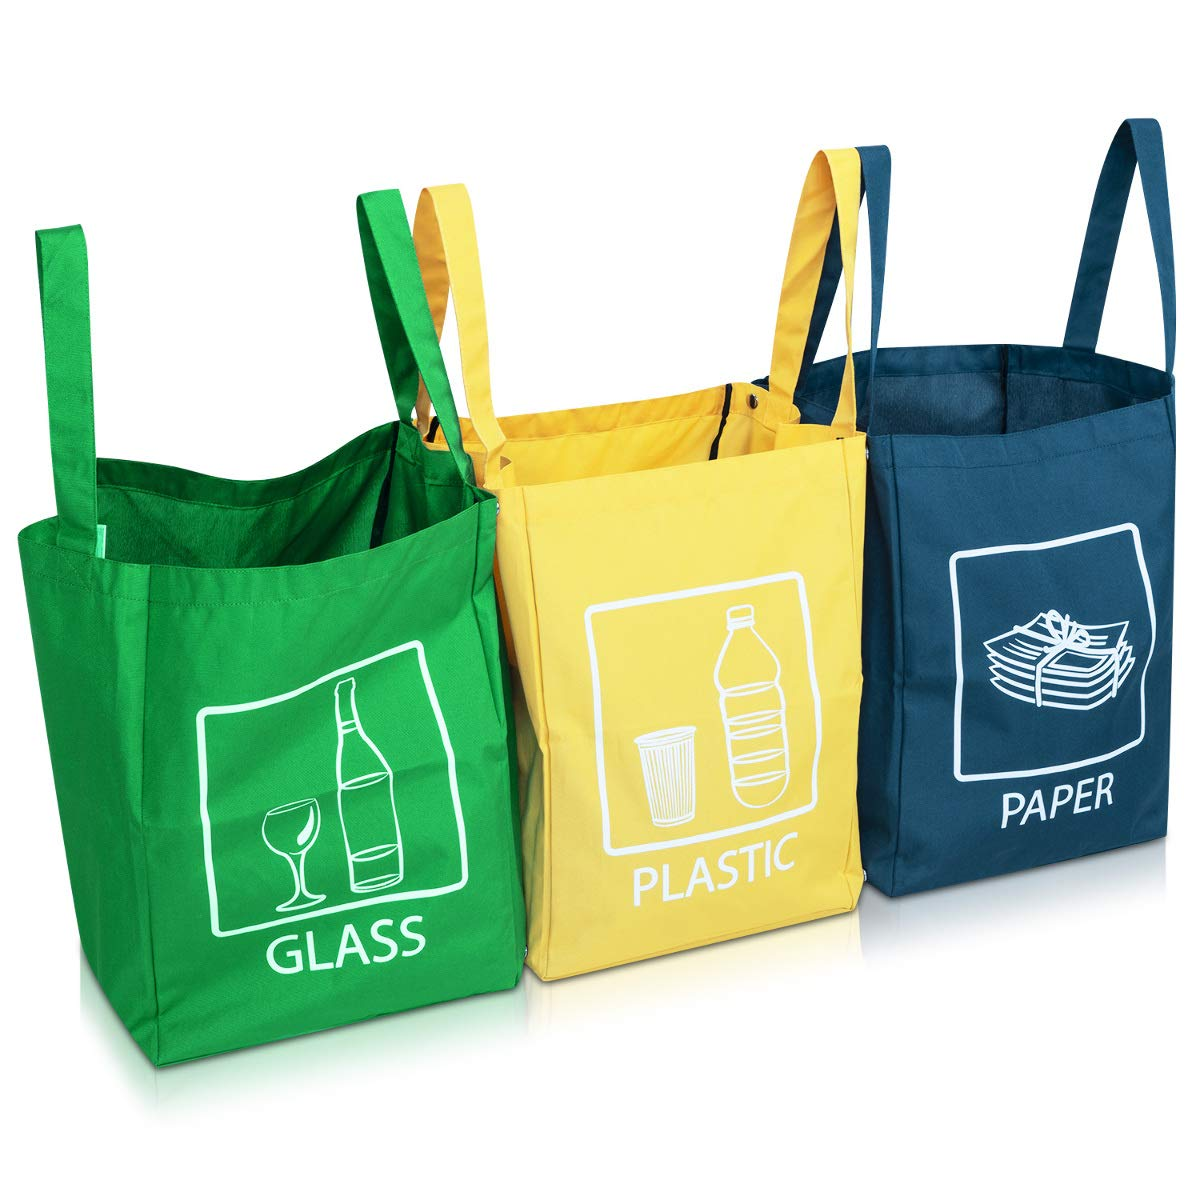 Navaris-Recycling-Bags-Set-3-Recycle-Bag-Organisers-to-Separate-Paper-Glass-and-Plastic-Made-of-Strong-Sturdy-Fabric-for-Home-Office-Kitchen